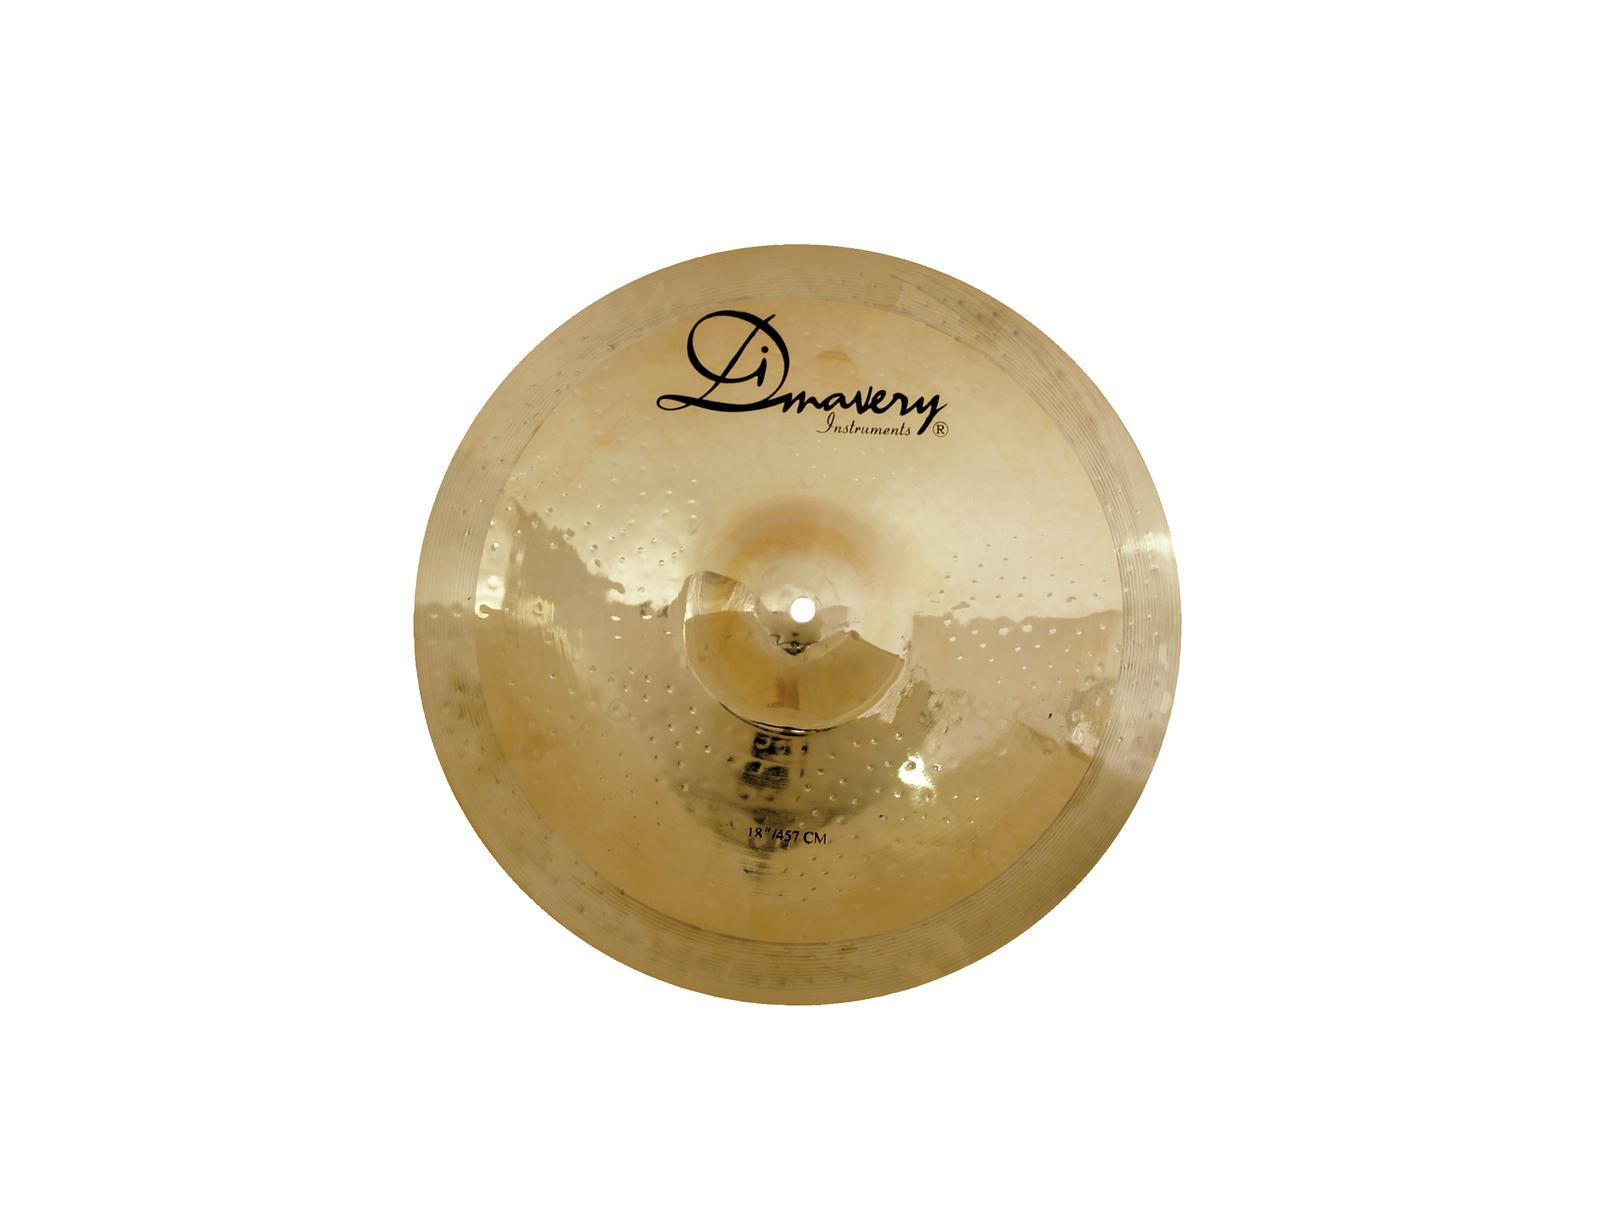 Piatto per batteria acustica, drum, 18-Crash DIMAVERY DBMC-918